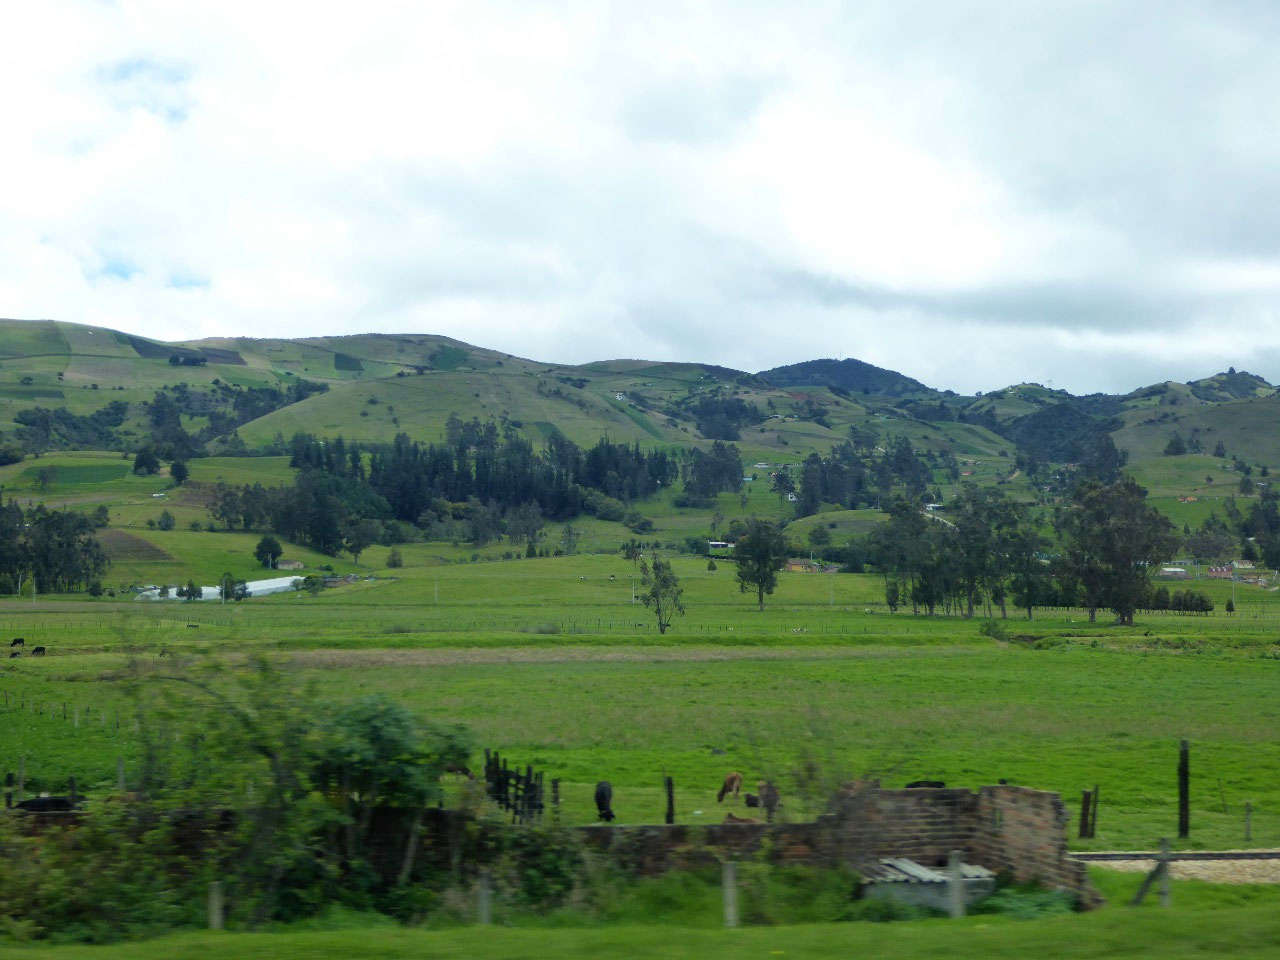 The country side 4